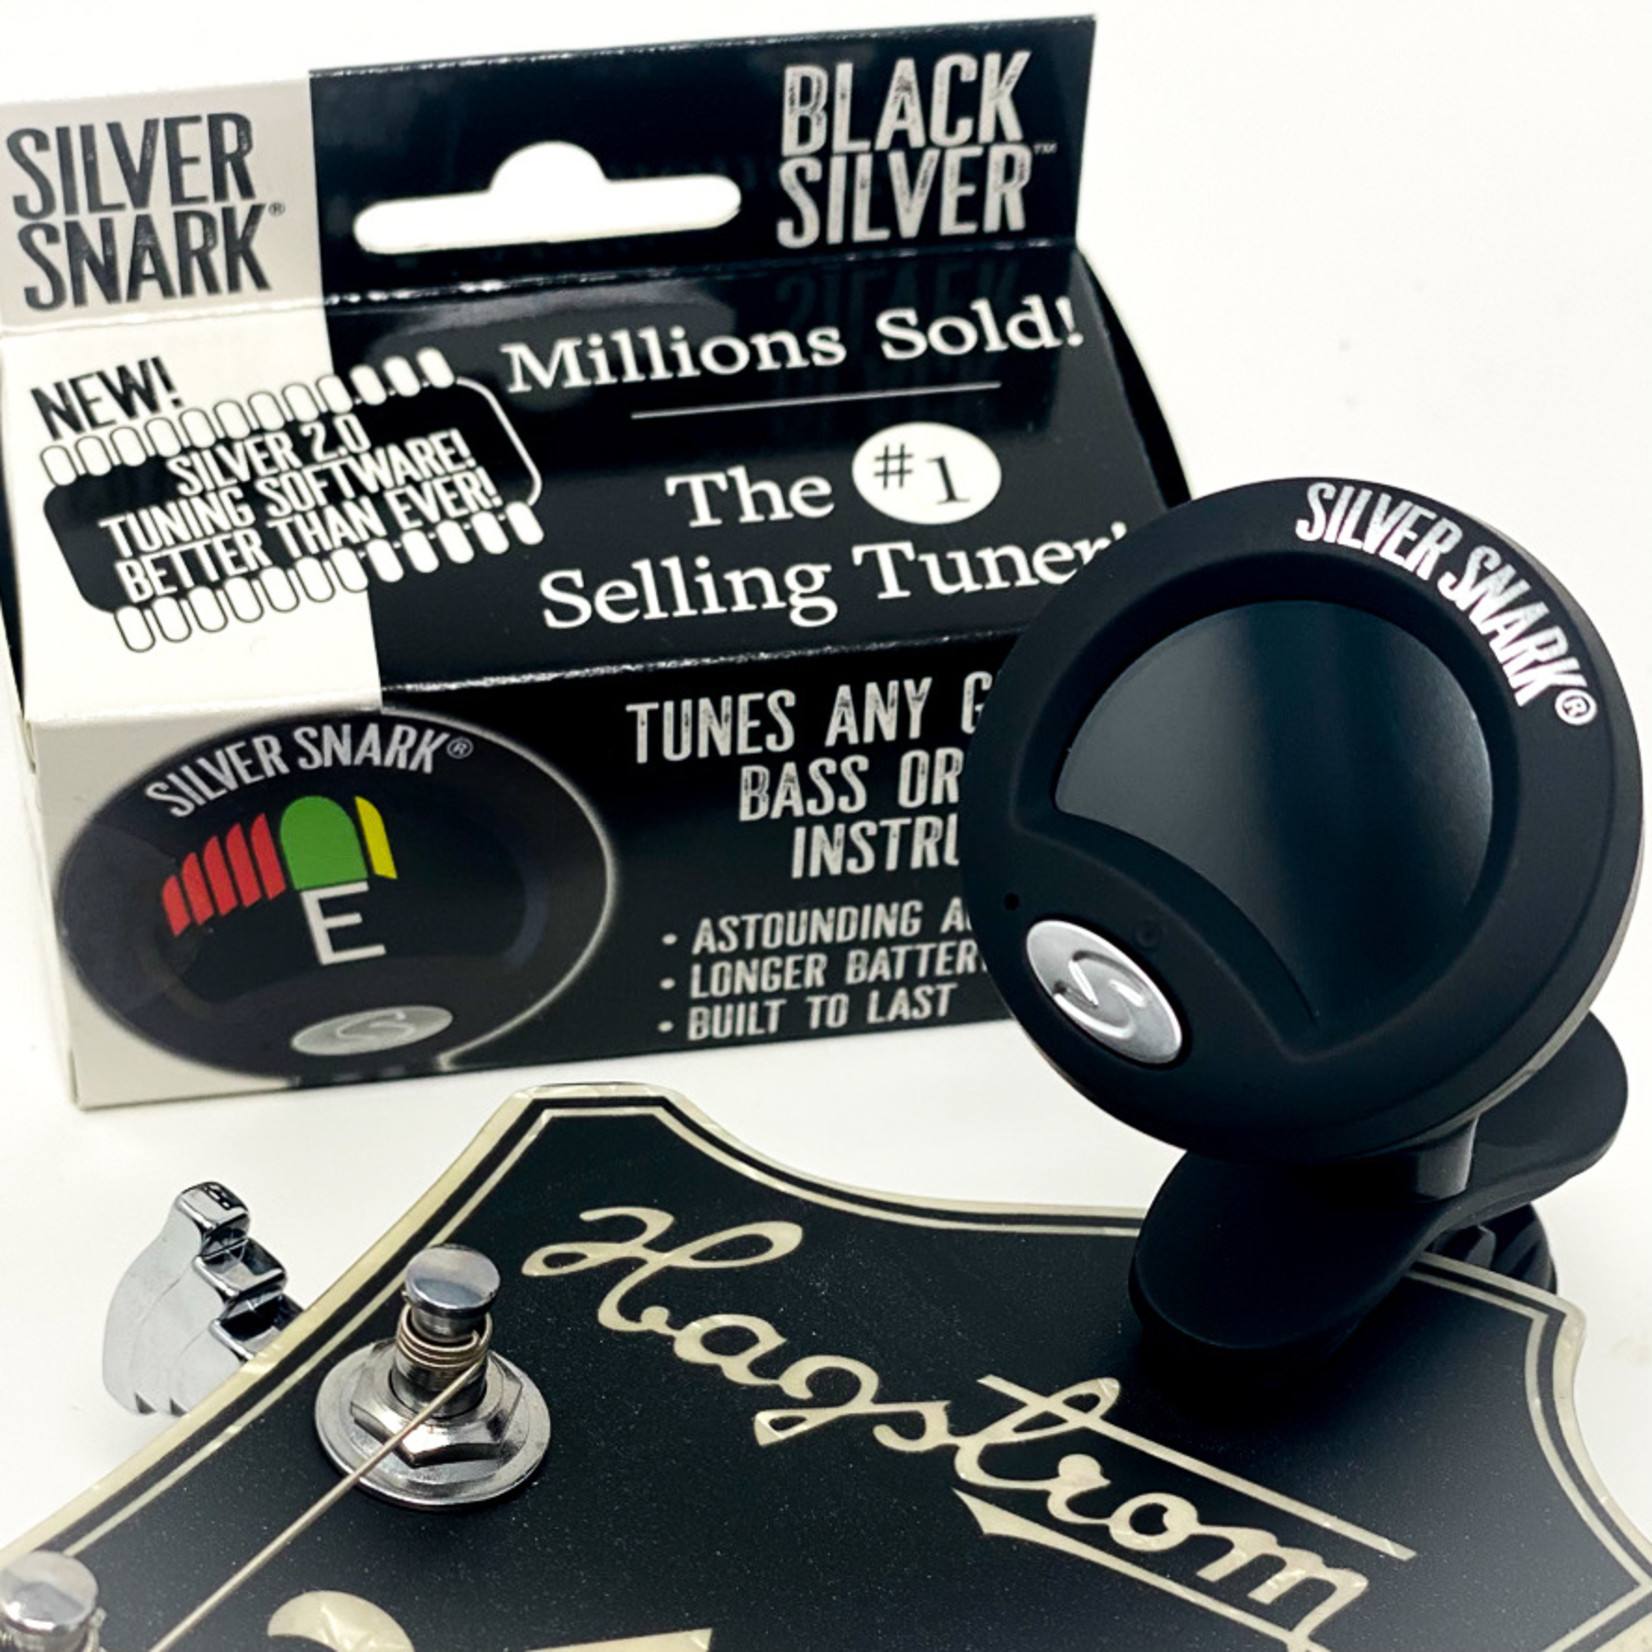 Snark Silver Snark BLACK SILVER - Clip Tuner for All Instruments - NEW Color and 2.0 Software for 2021